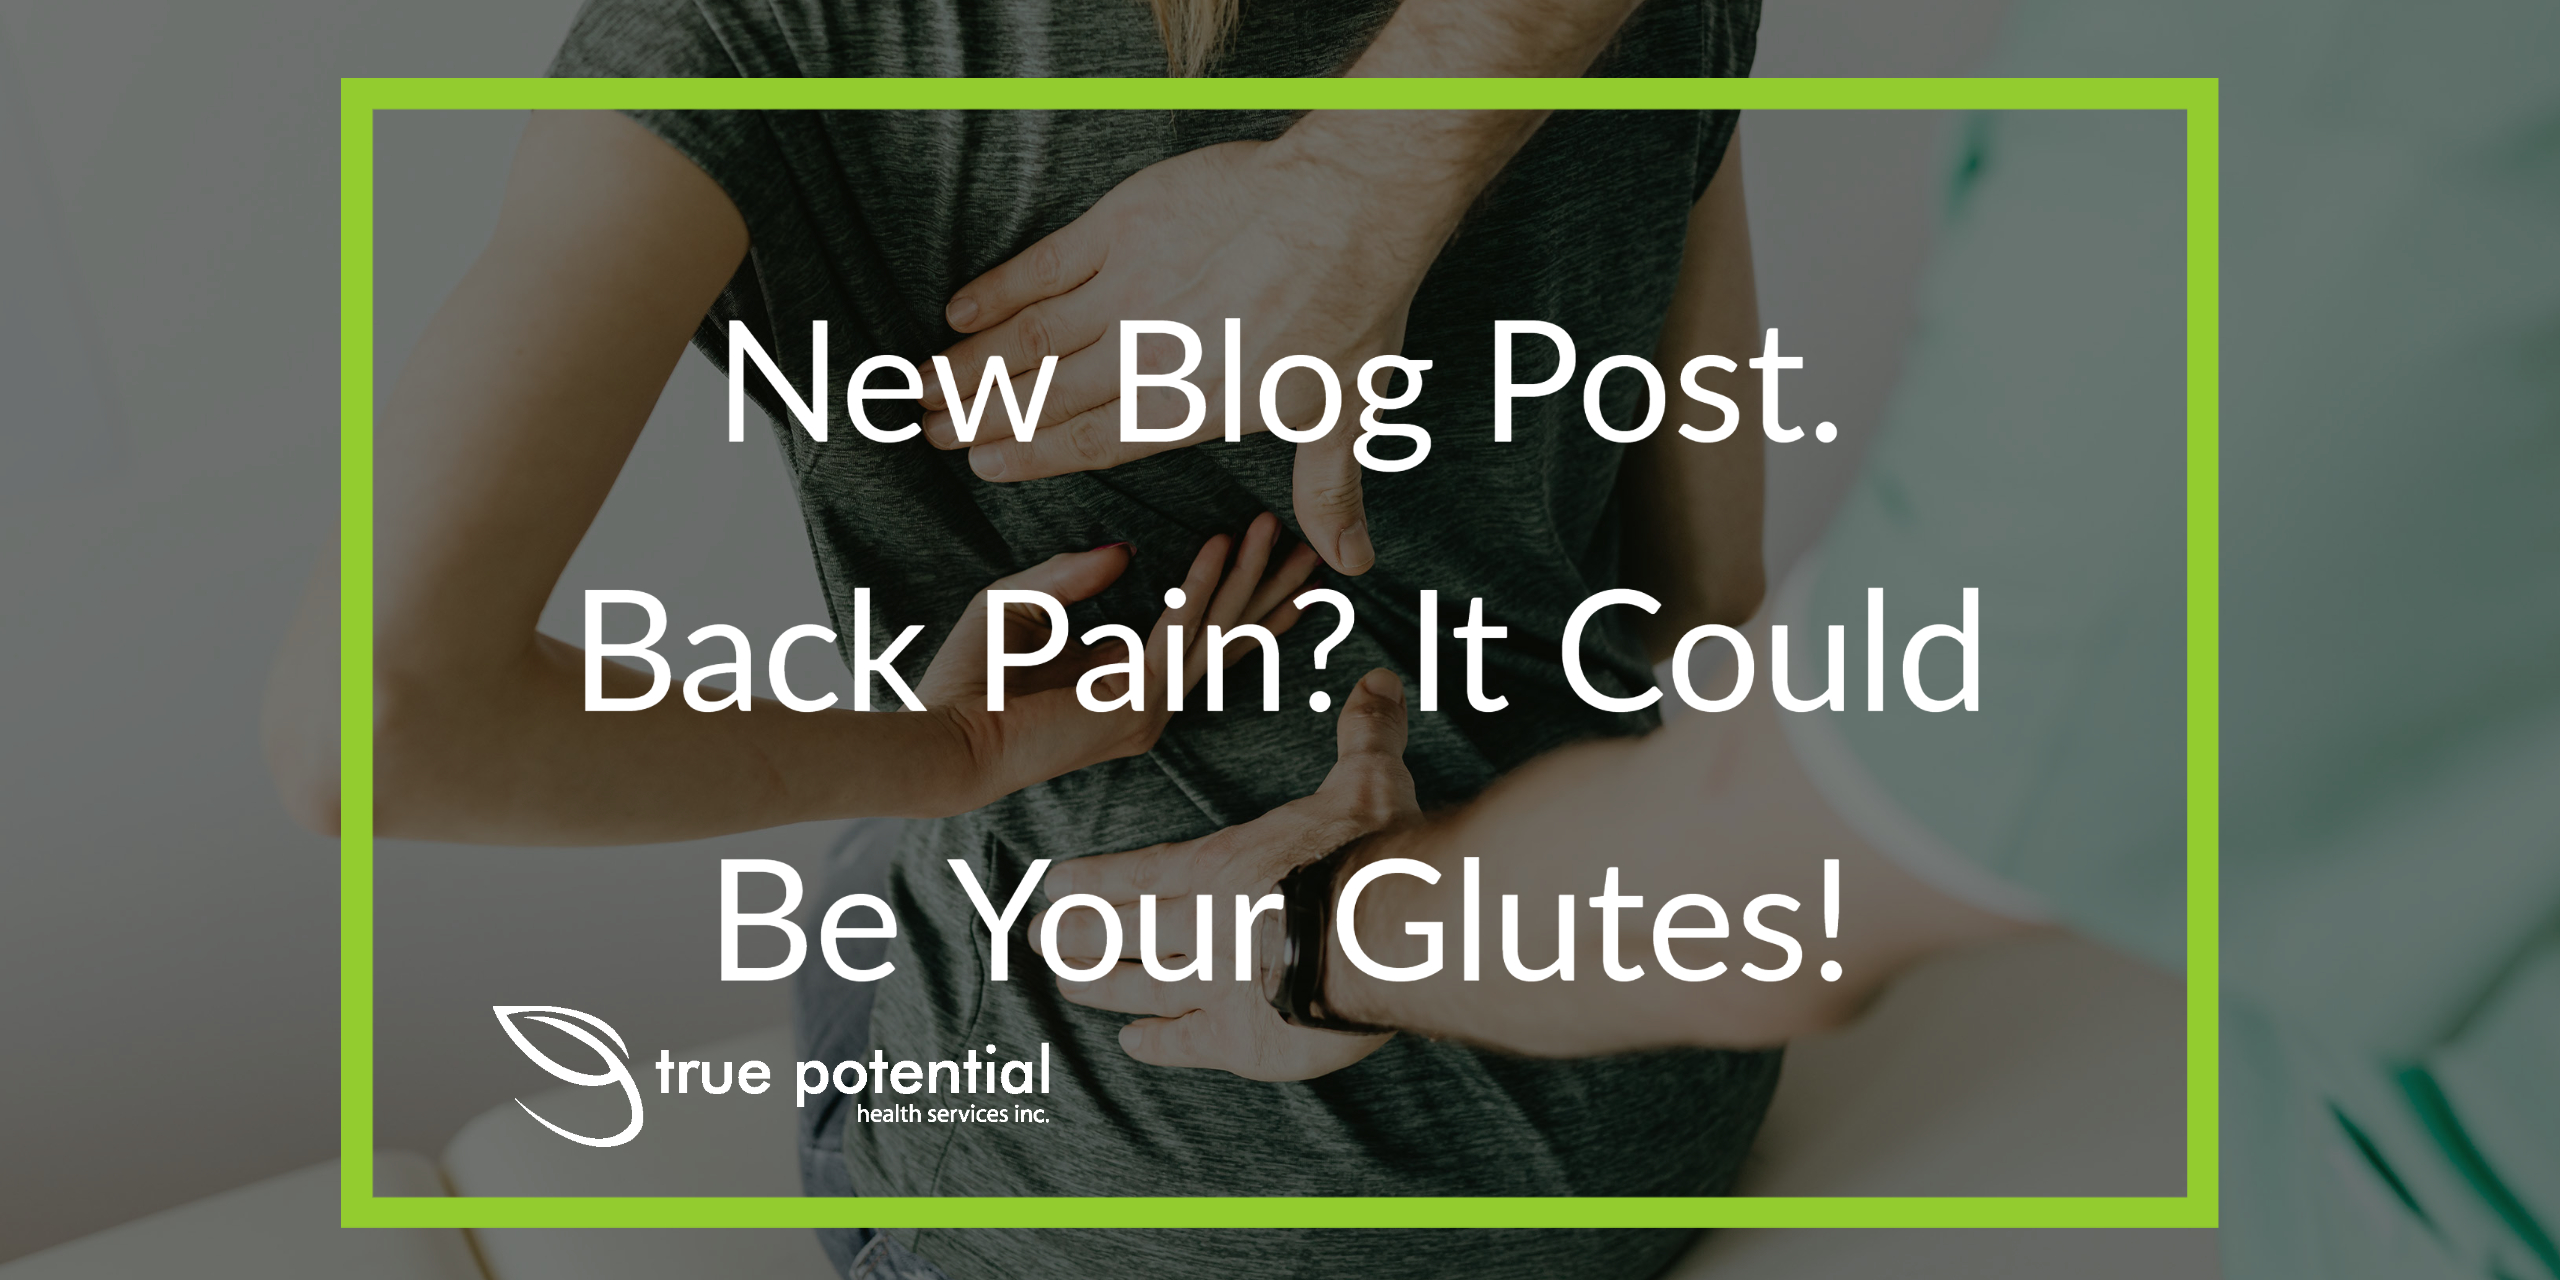 Back pain caused by glutes